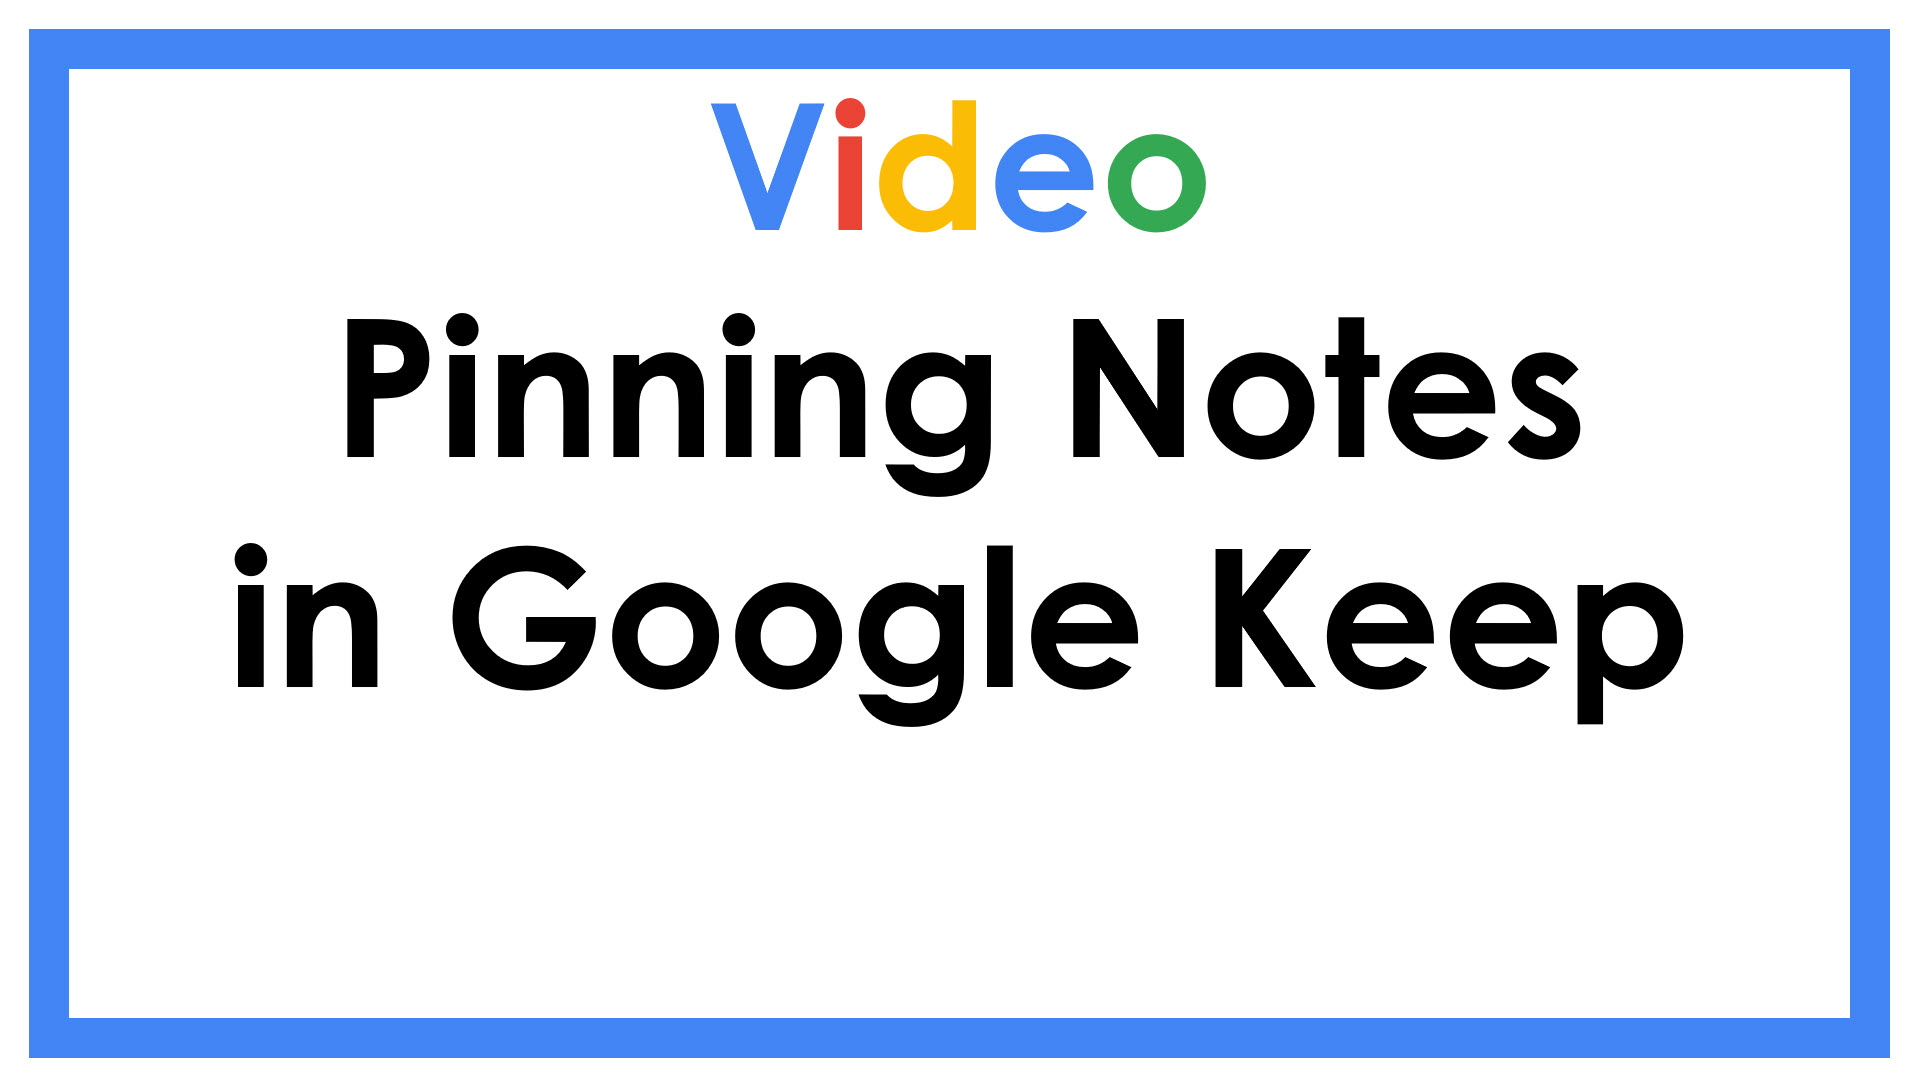 Pinning Notes in Google Keep